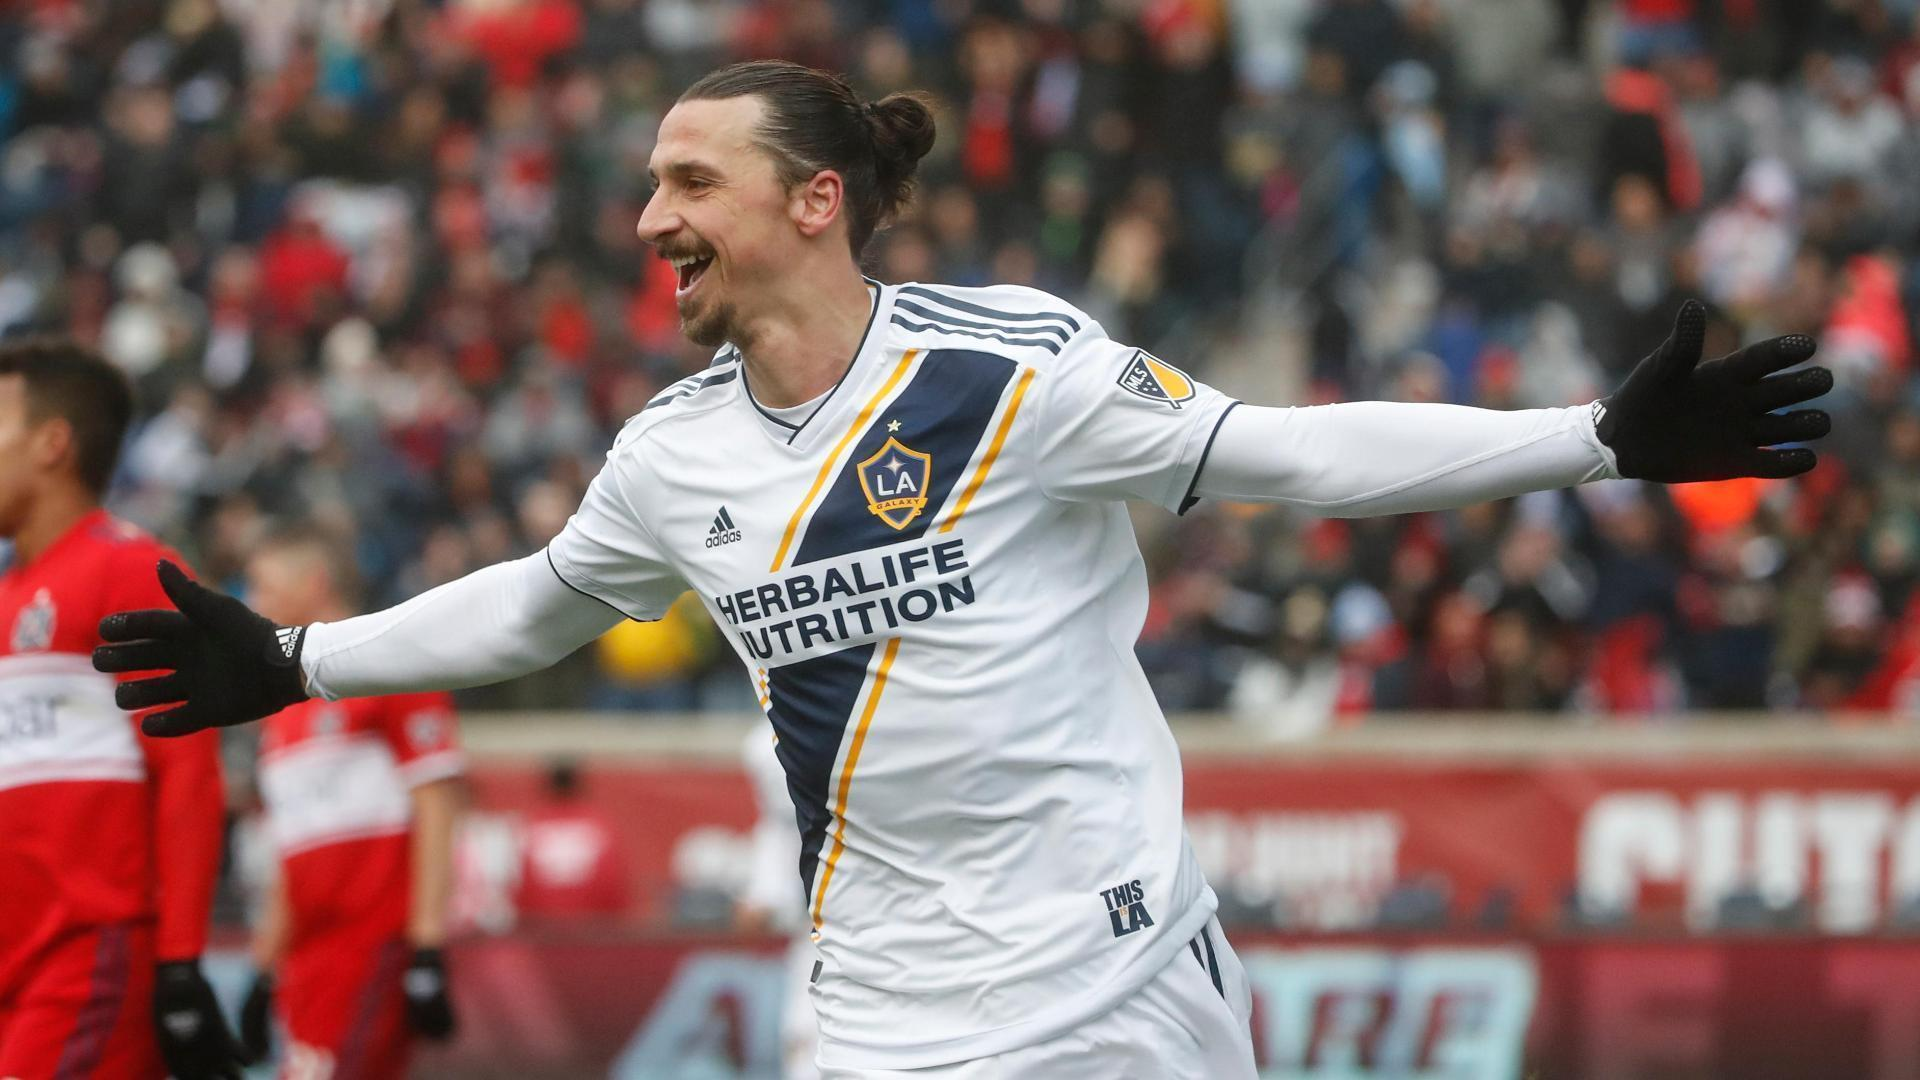 Chicago 0-1 LA Galaxy: Zlatan scores the winner - Via MLS